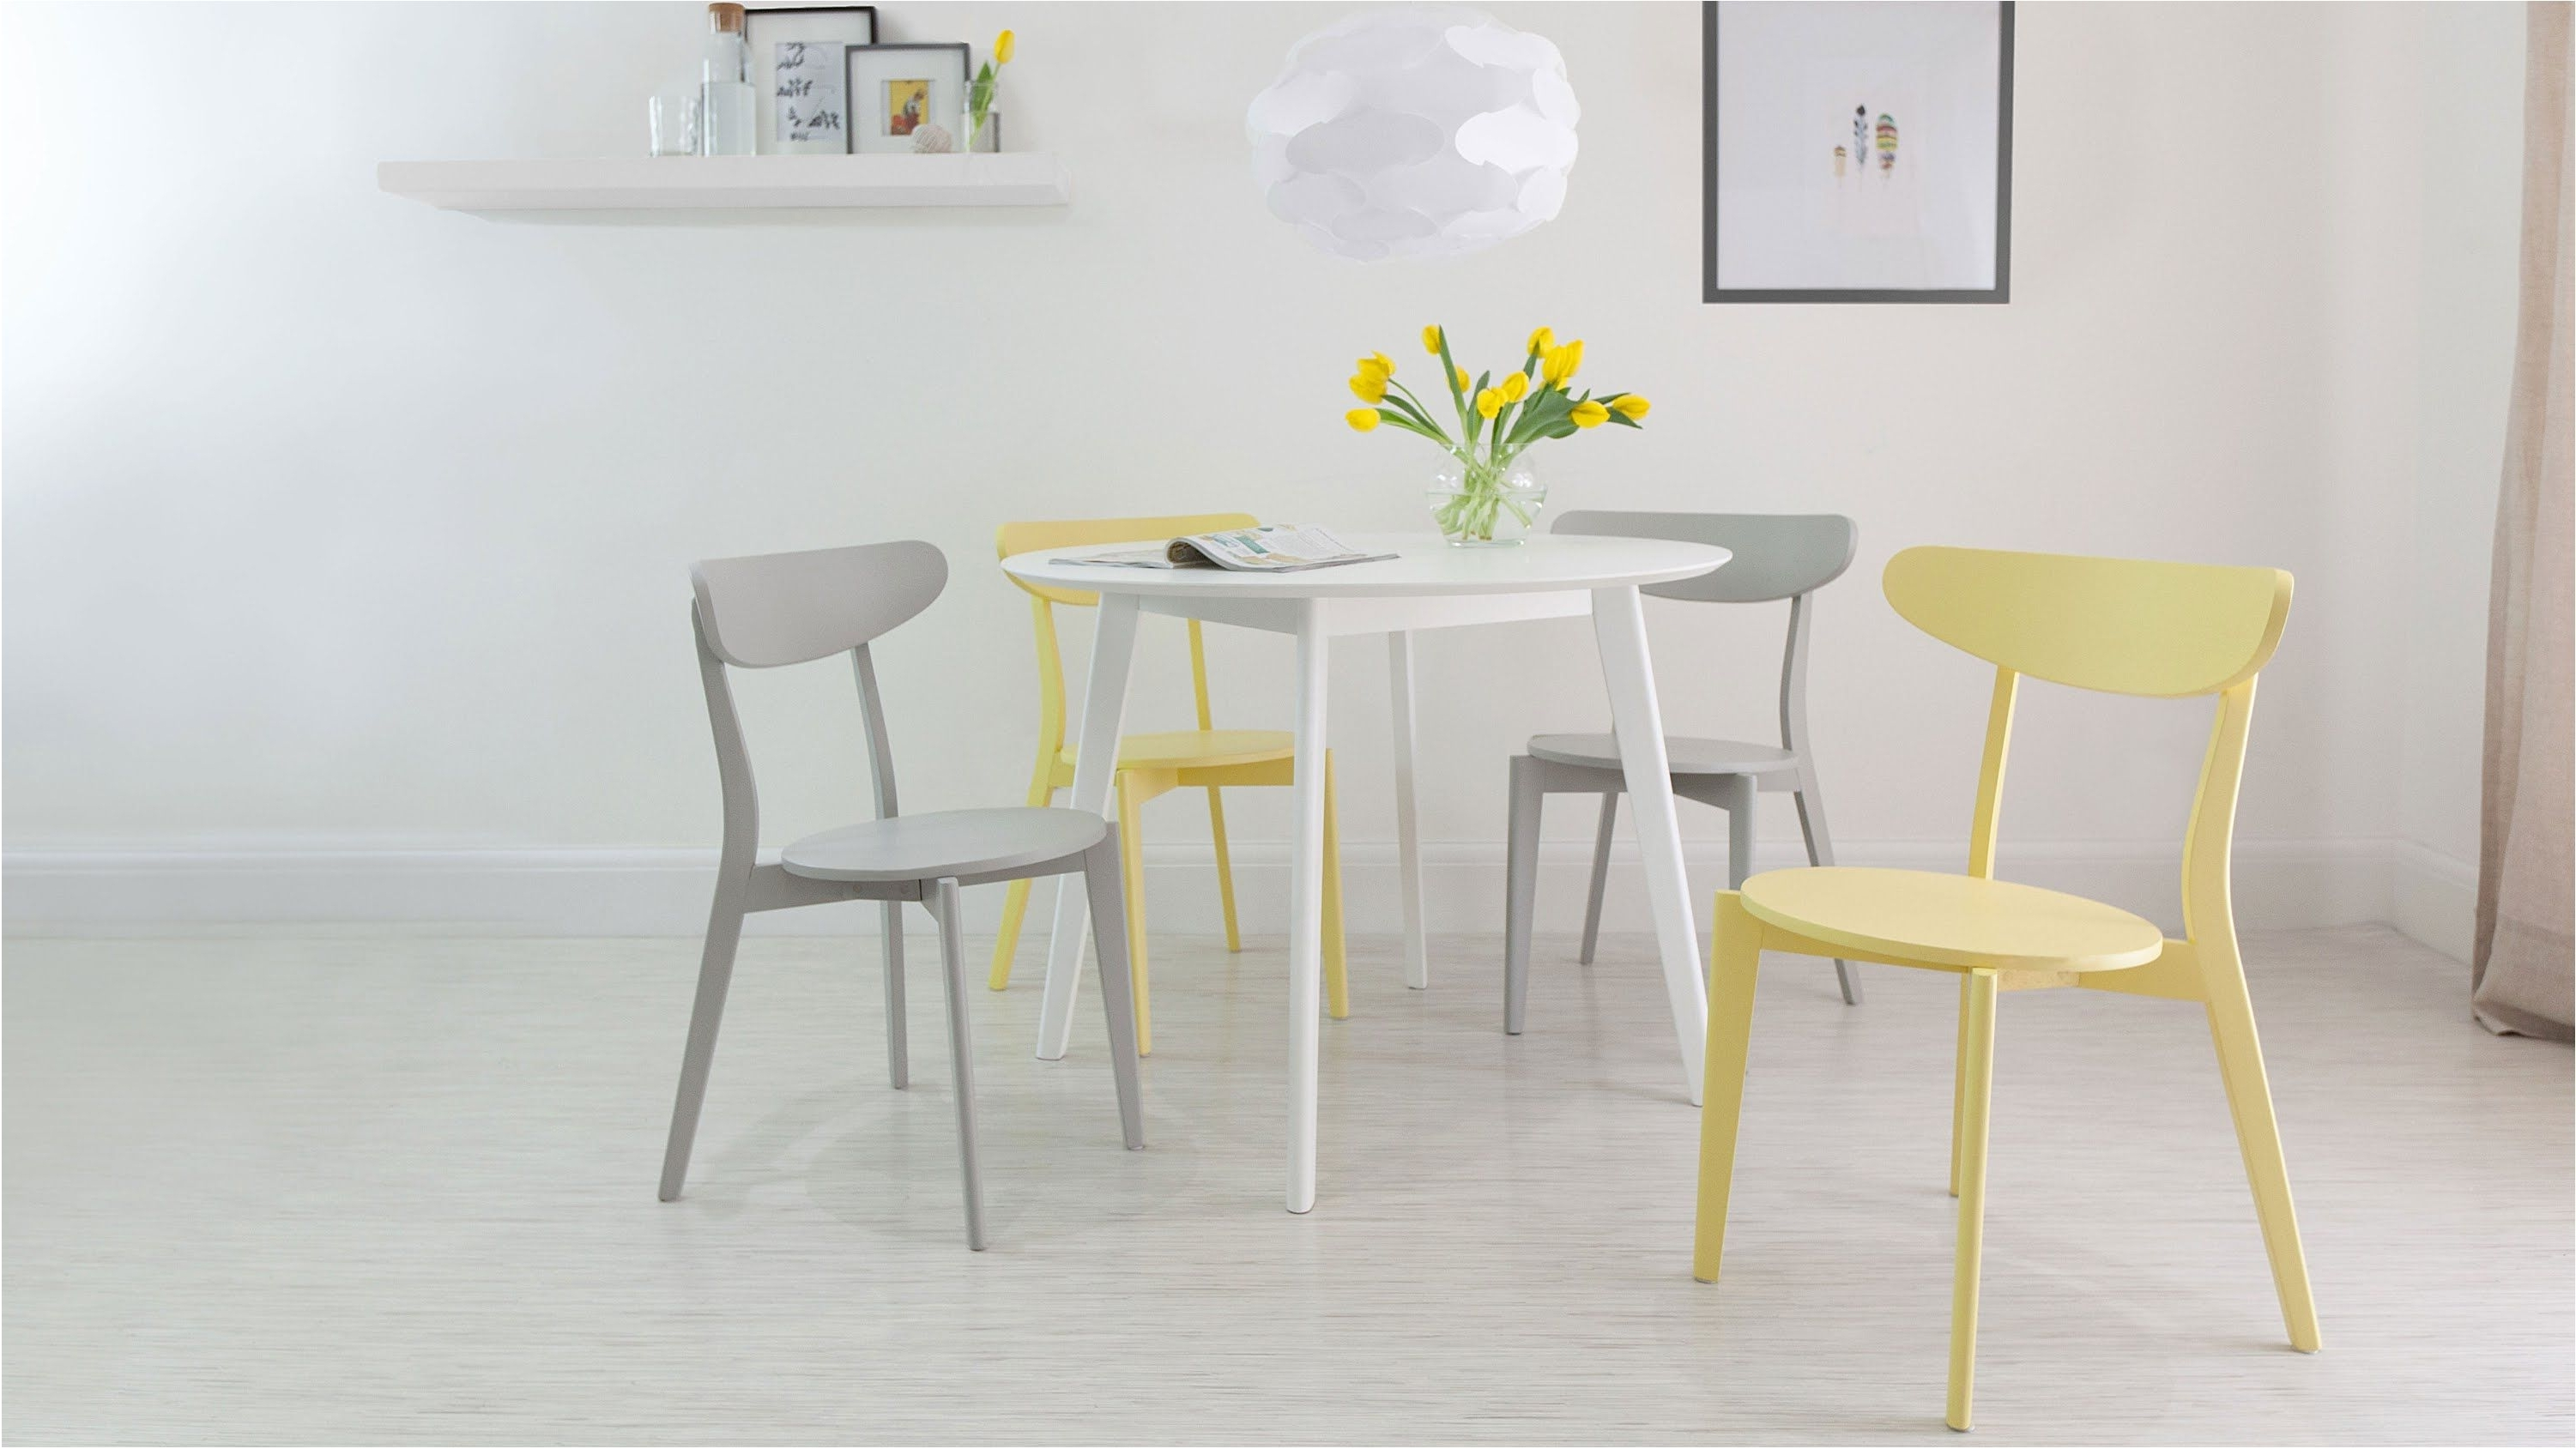 Most Up To Date Terrific Full White High Gloss Round Dining Table 4 Chairs Dining With Round High Gloss Dining Tables (Gallery 23 of 25)